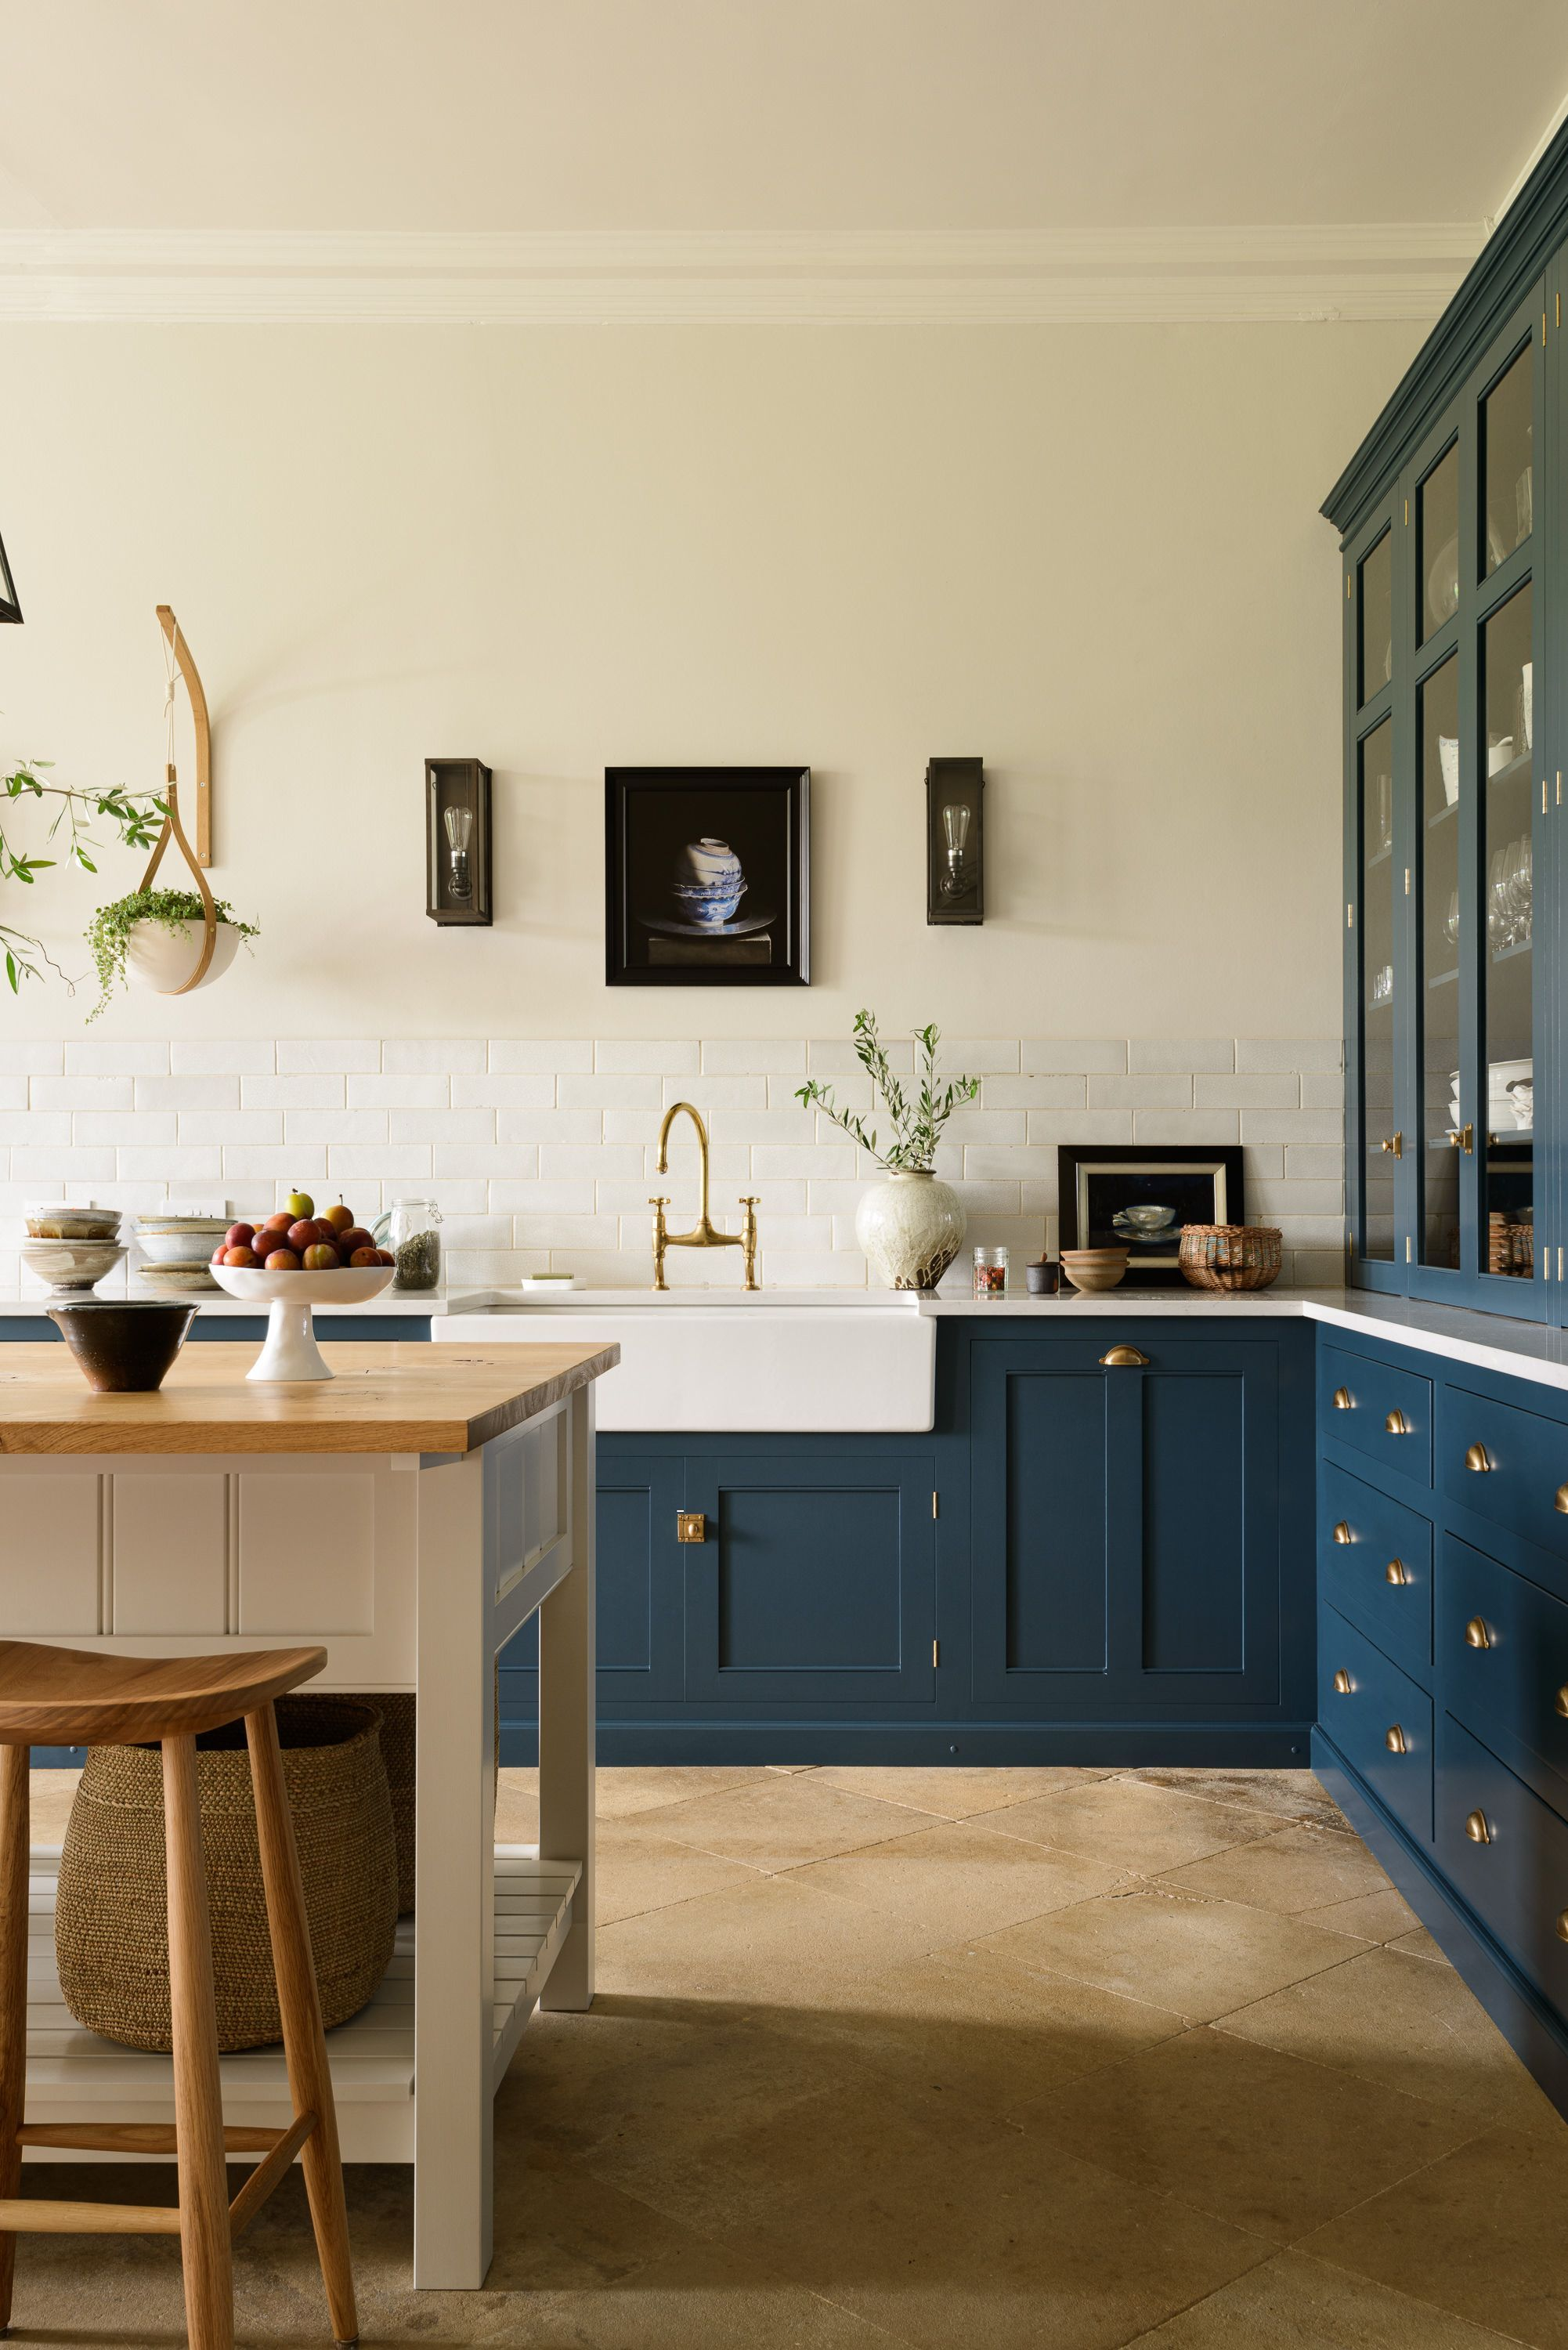 We get a lot of questions from oversea customers about whether they can have a deVOL Kitchen. The answer is yes! We can design dreamy kitchens for anyone anywhere, from the US to Australia. The process is super simple and fun, so no matter where you are in the world, getting a handmade kitchen by deVOL is no issue.